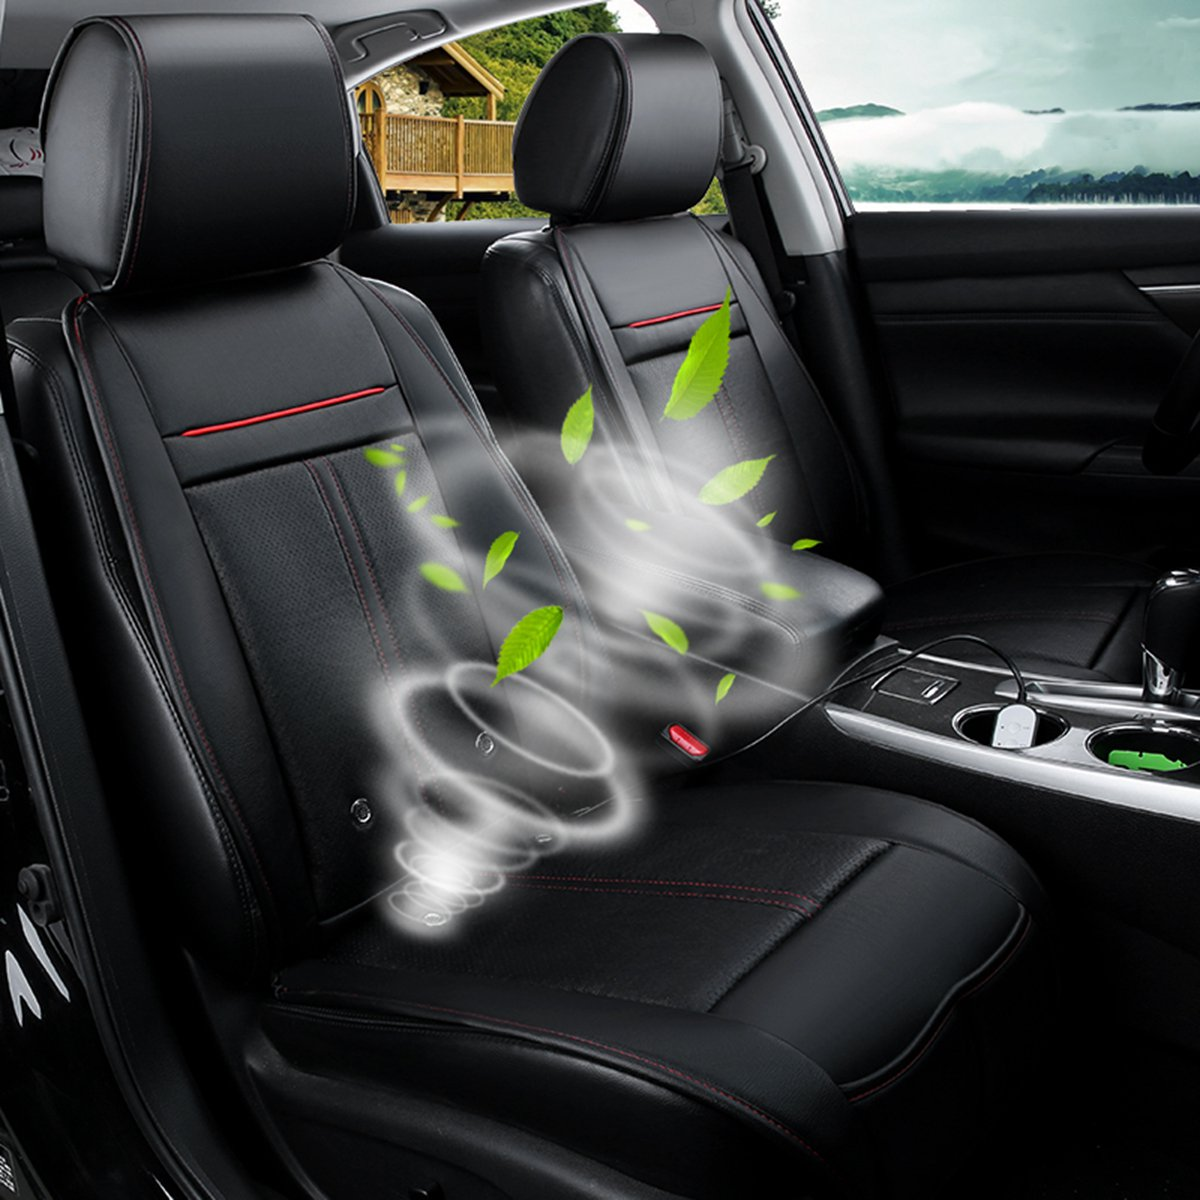 3 In 1 Electric Auto Ventilation Seat Cushion Cooling Heating Massage Multifunction